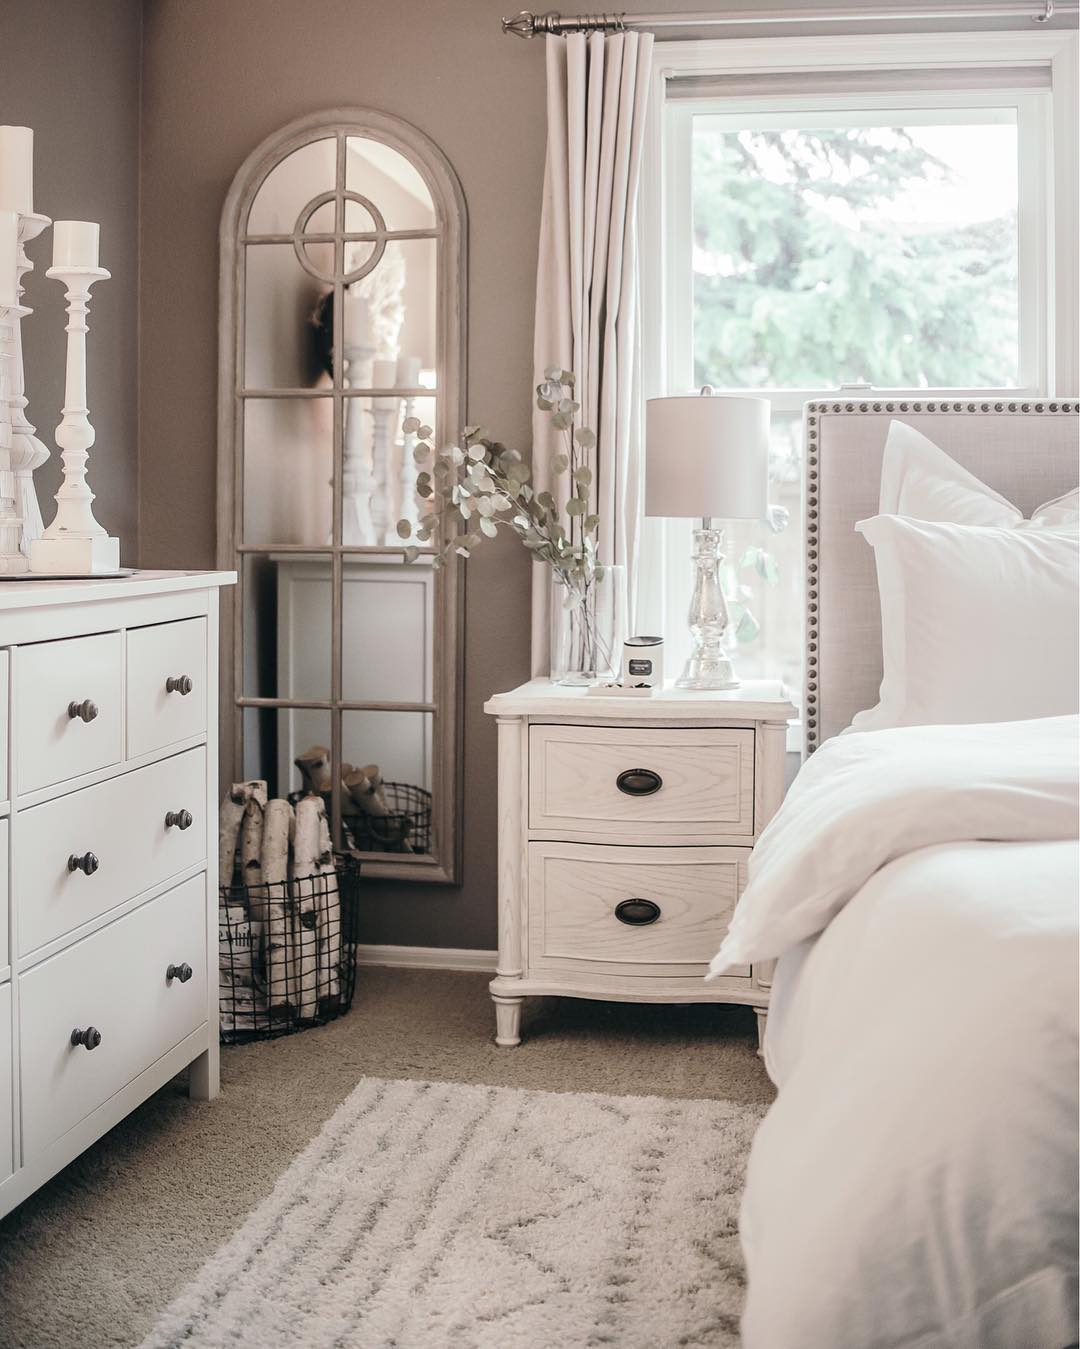 Houses of instagram a bedroom in calm tones of white and gray for Dresser ideas for small bedroom